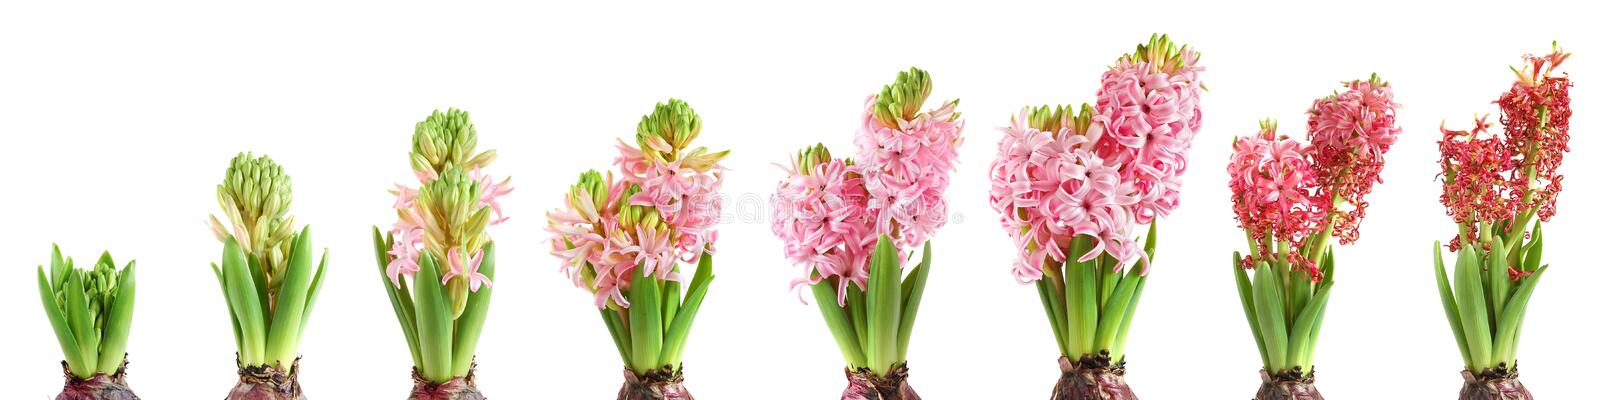 Hyacinth crescente imagem de stock royalty free